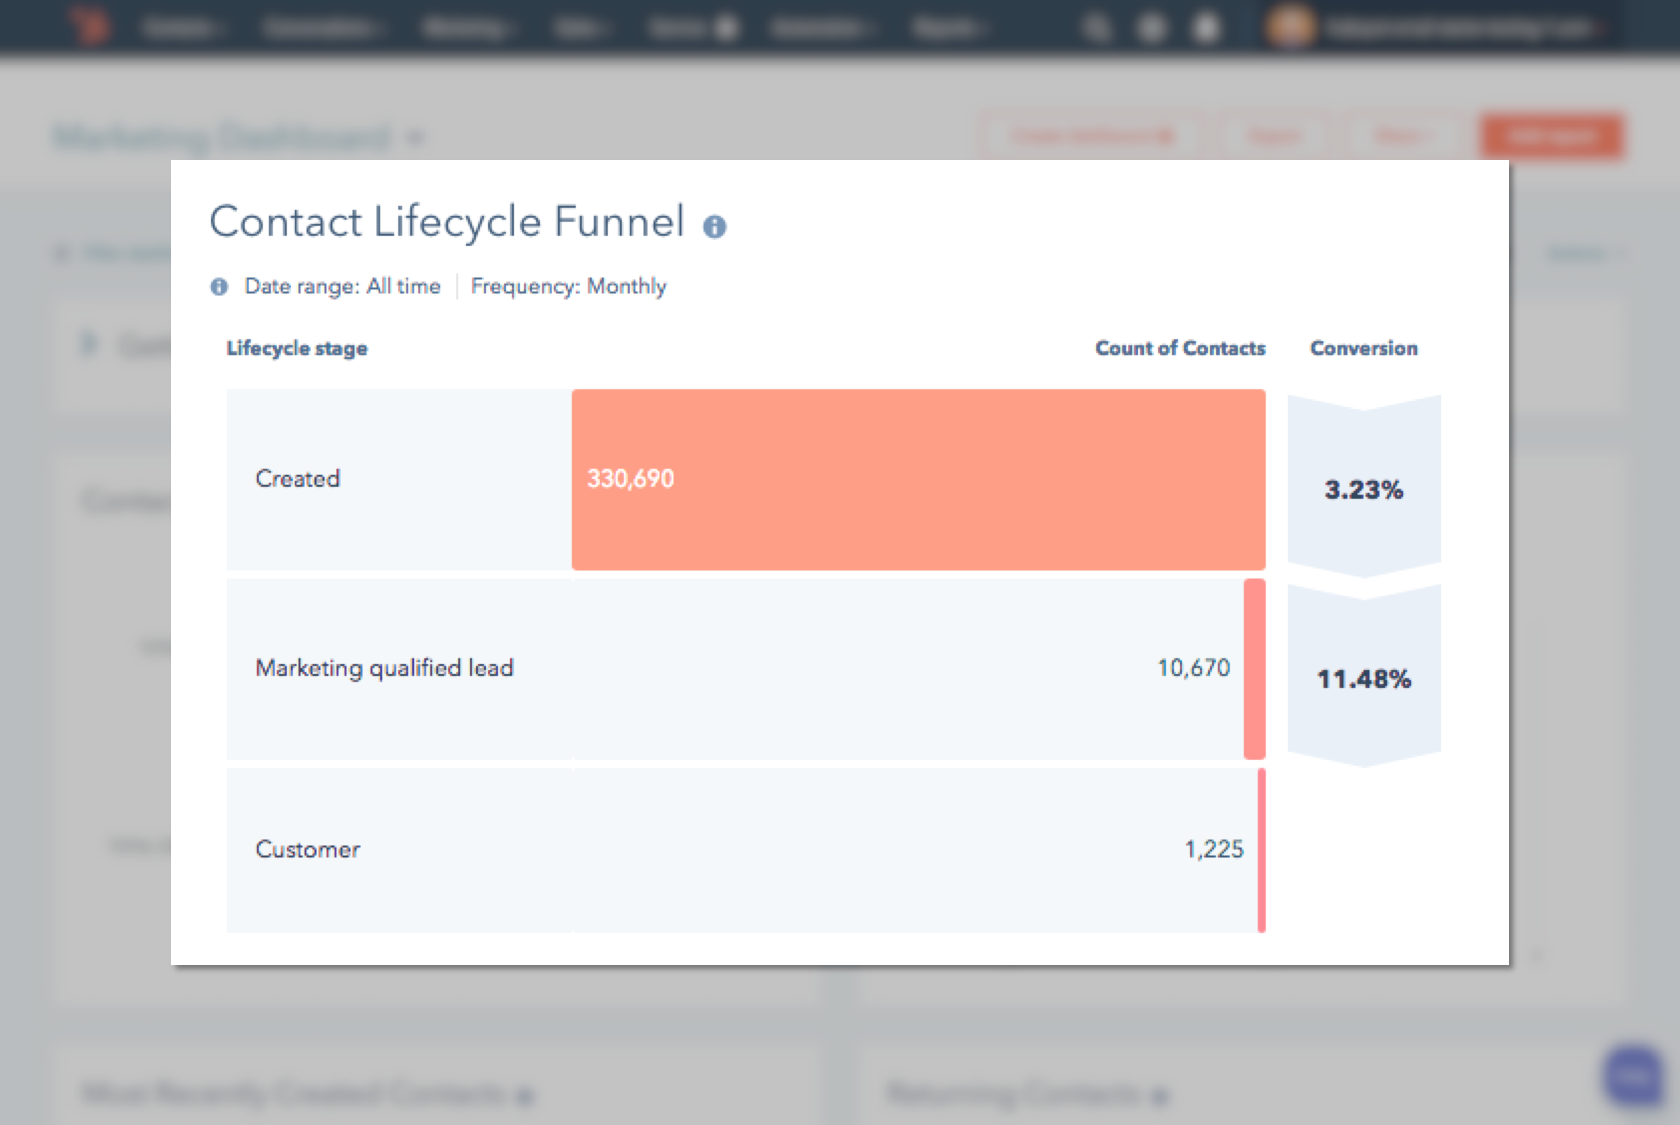 HubSpot Contact Lifecycle Funnel